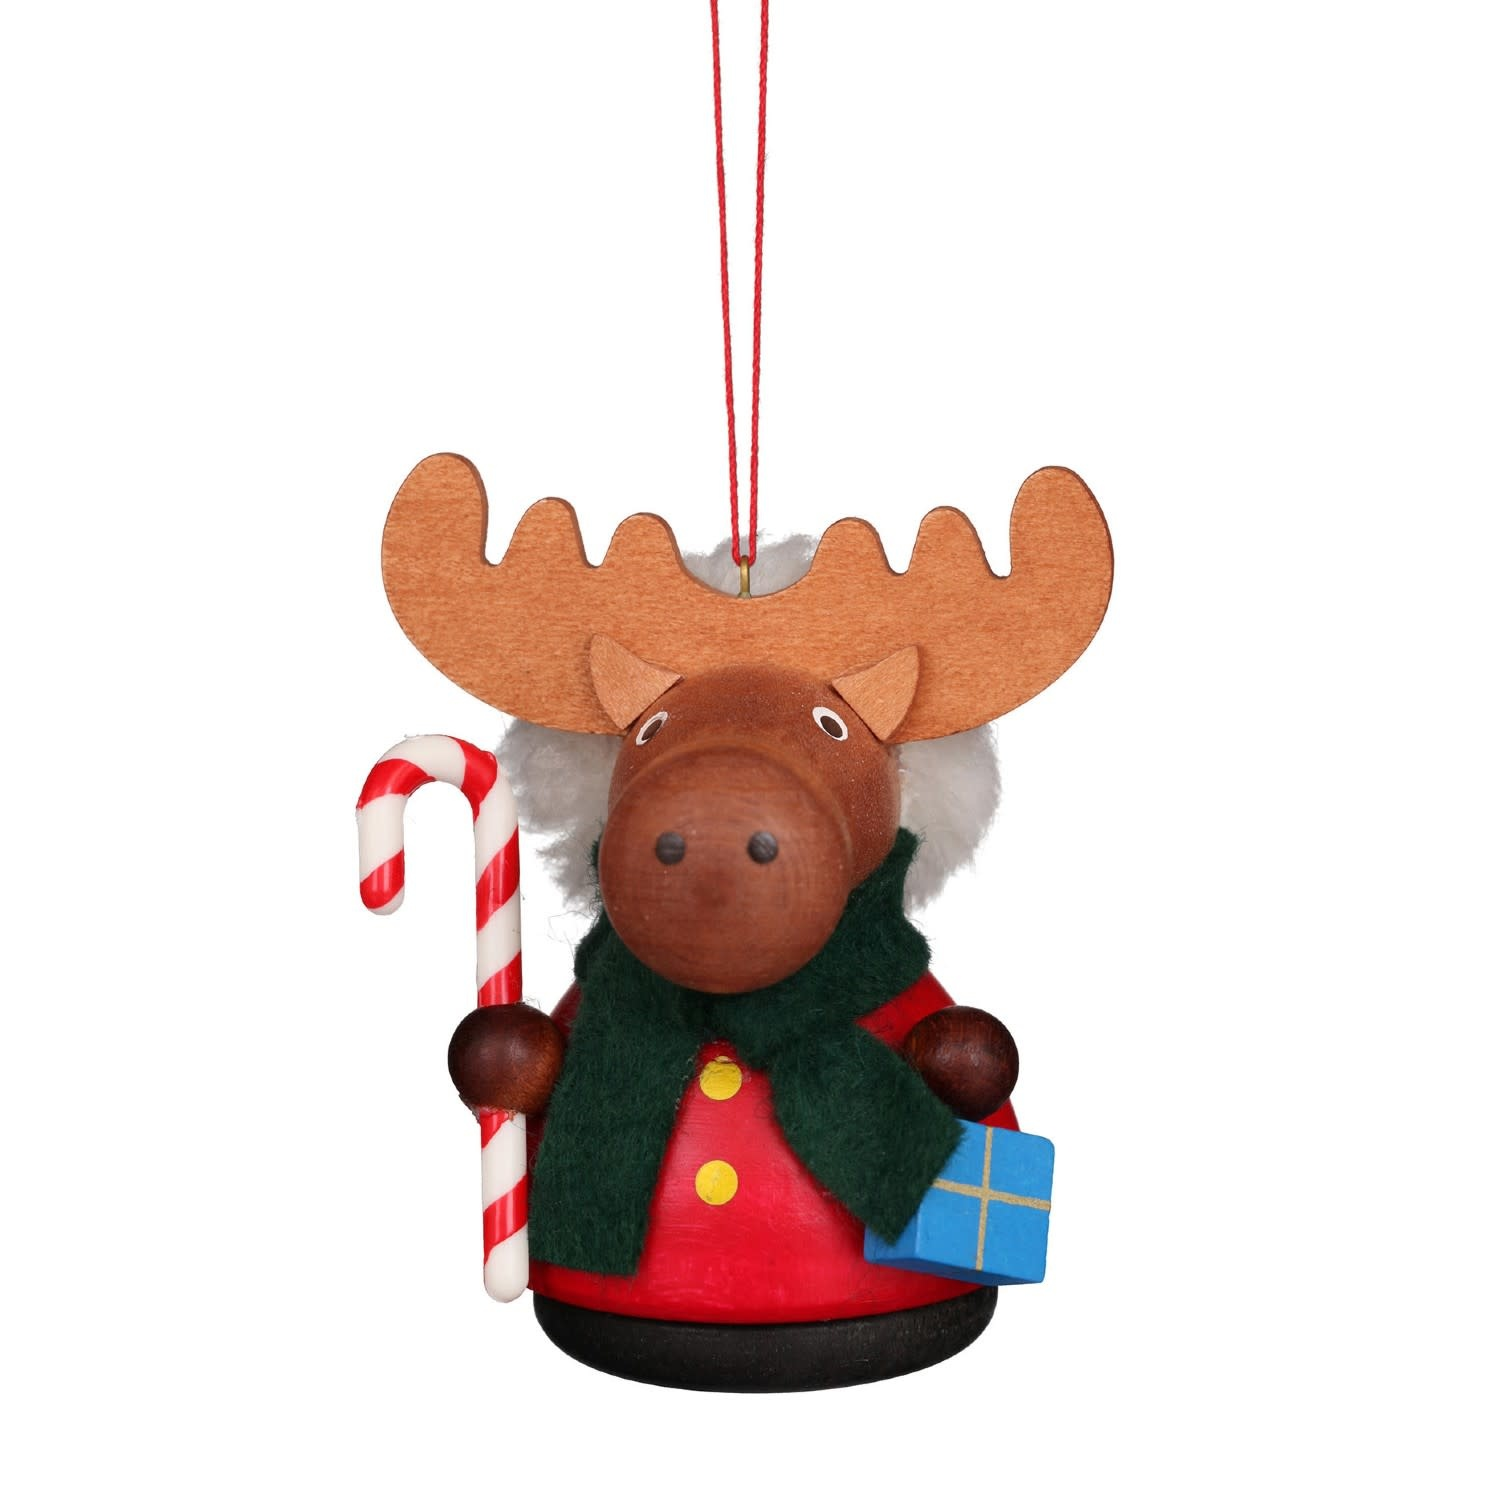 15-0432 Moose with Candycane Ornament (Wobble)